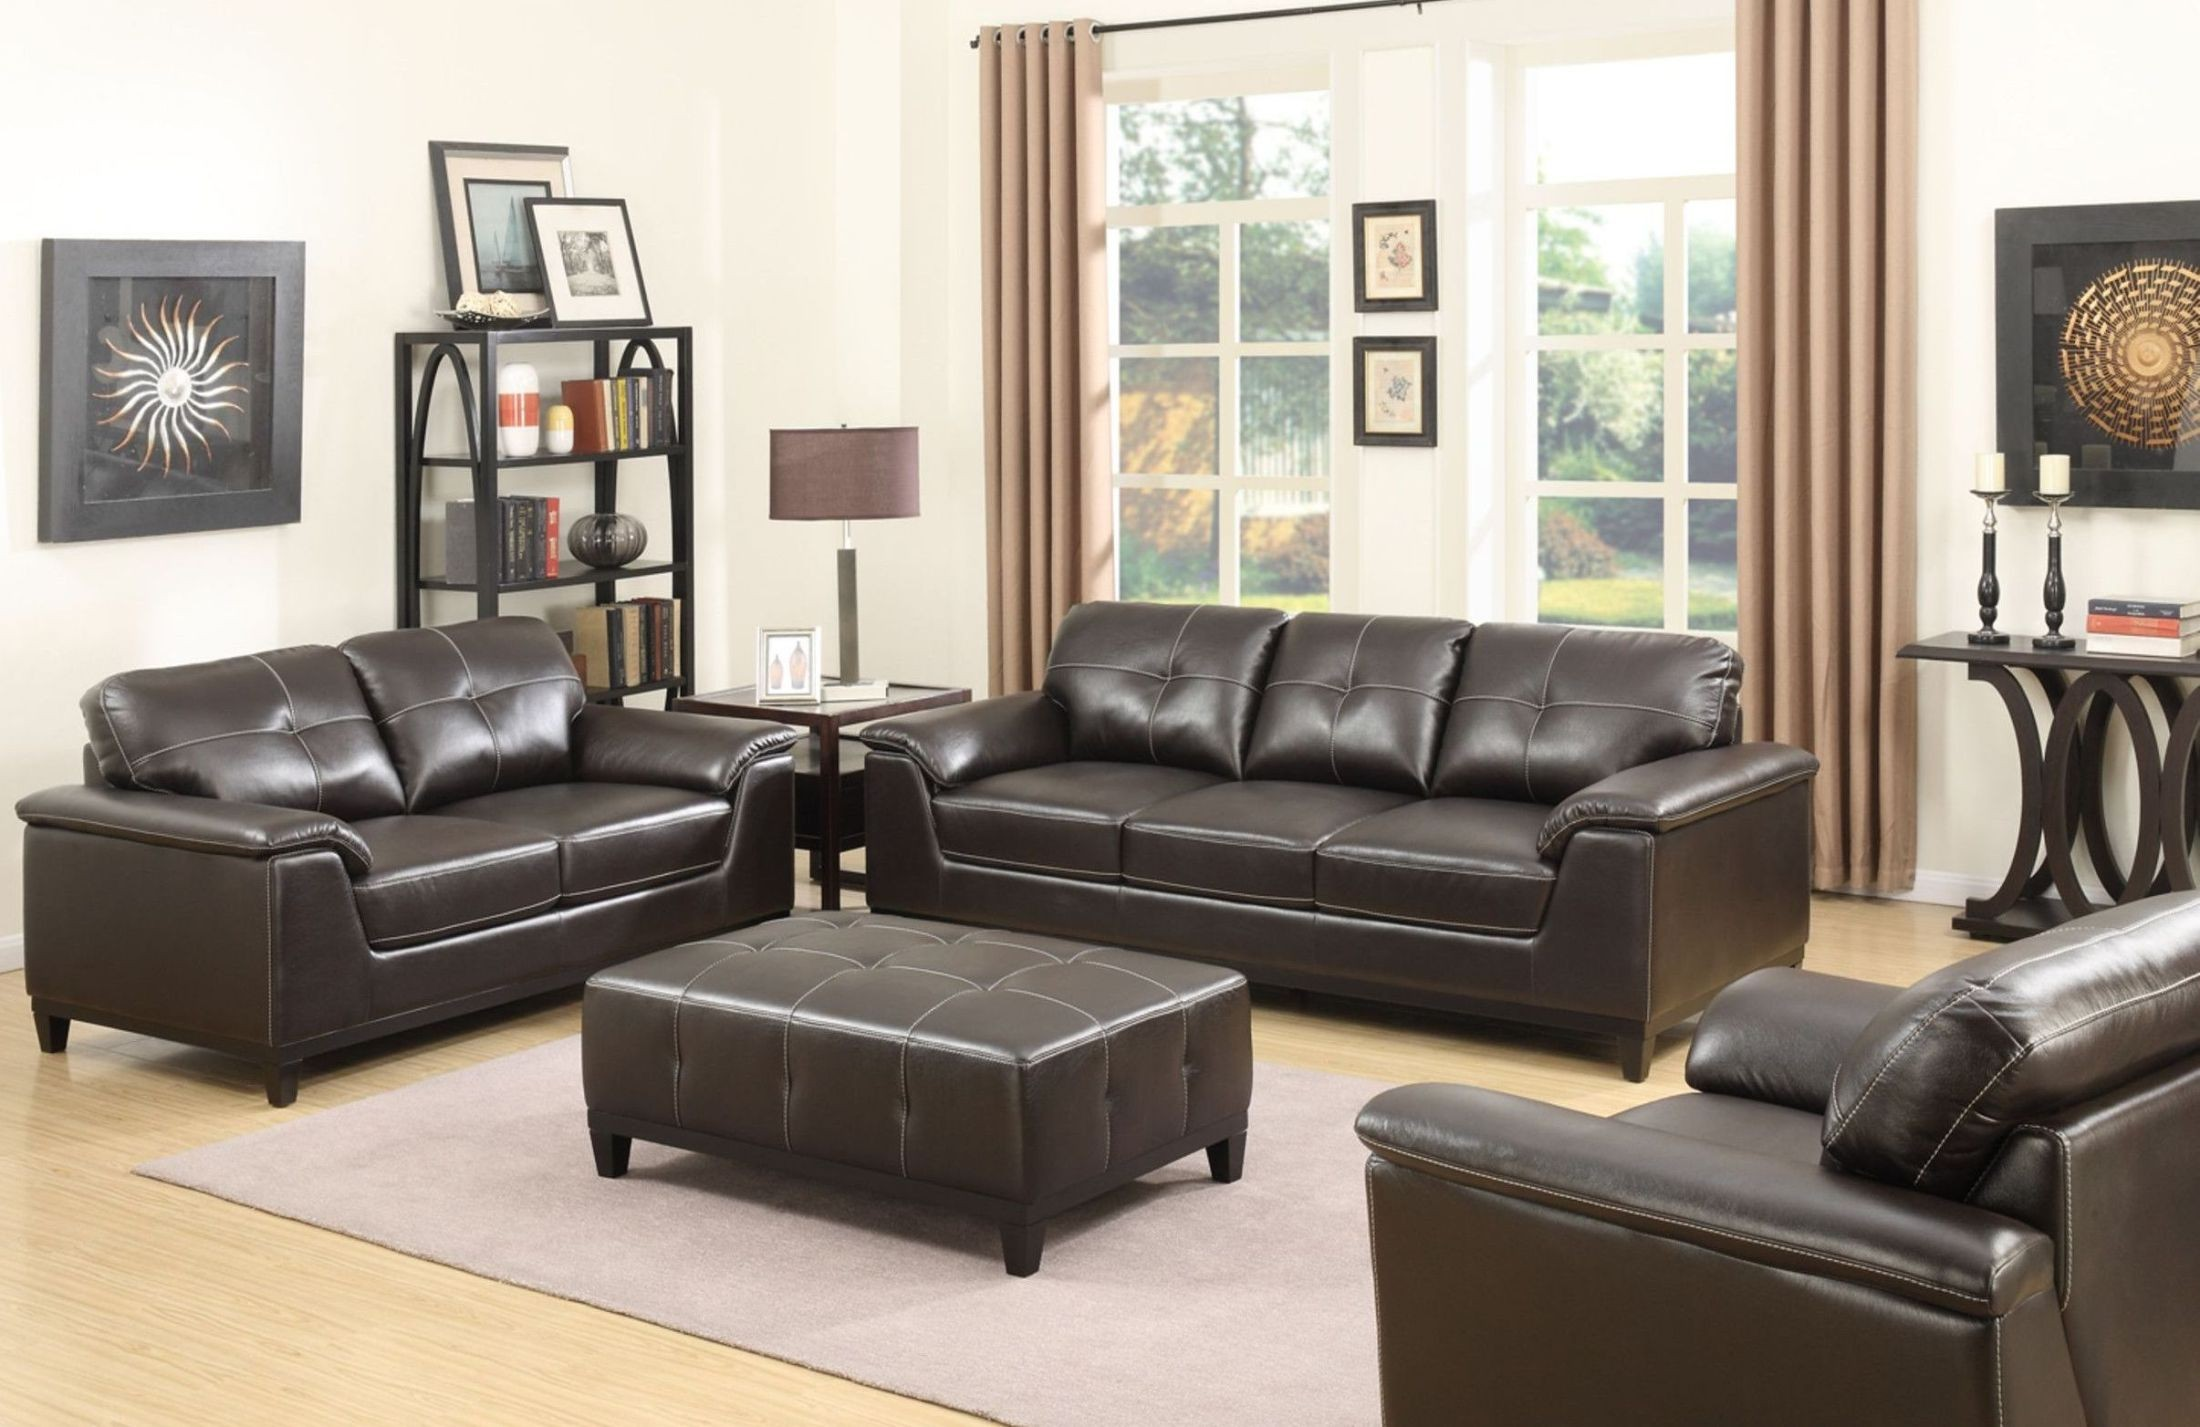 Marquis Walnut Living Room Set From Emerald Home Coleman Furniture